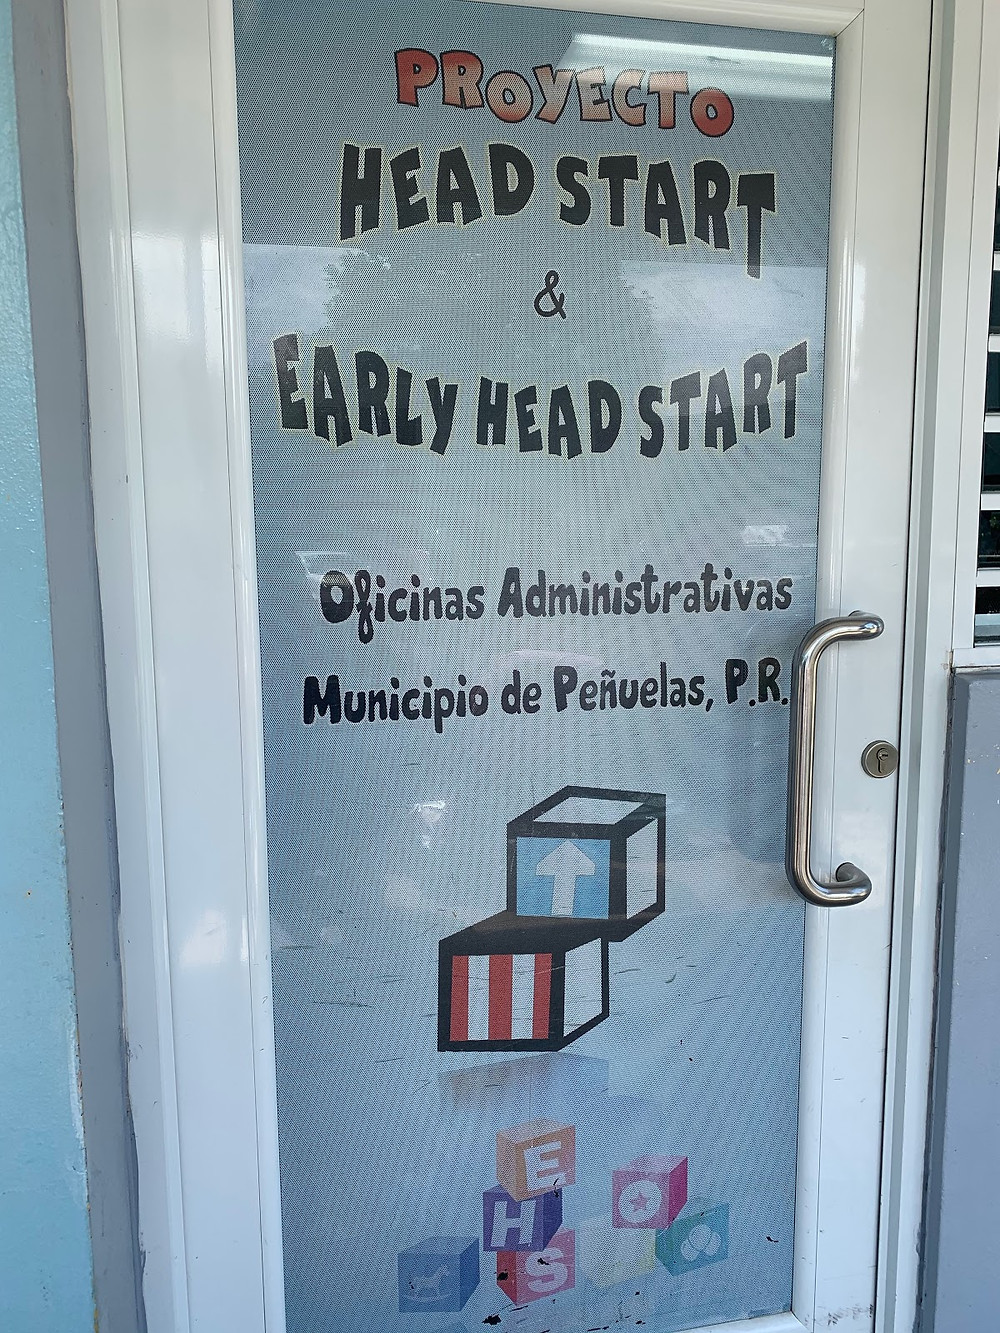 puerto rico, head start, penuelas, penuelas head start, proyecto, early head start, puerto rico head start